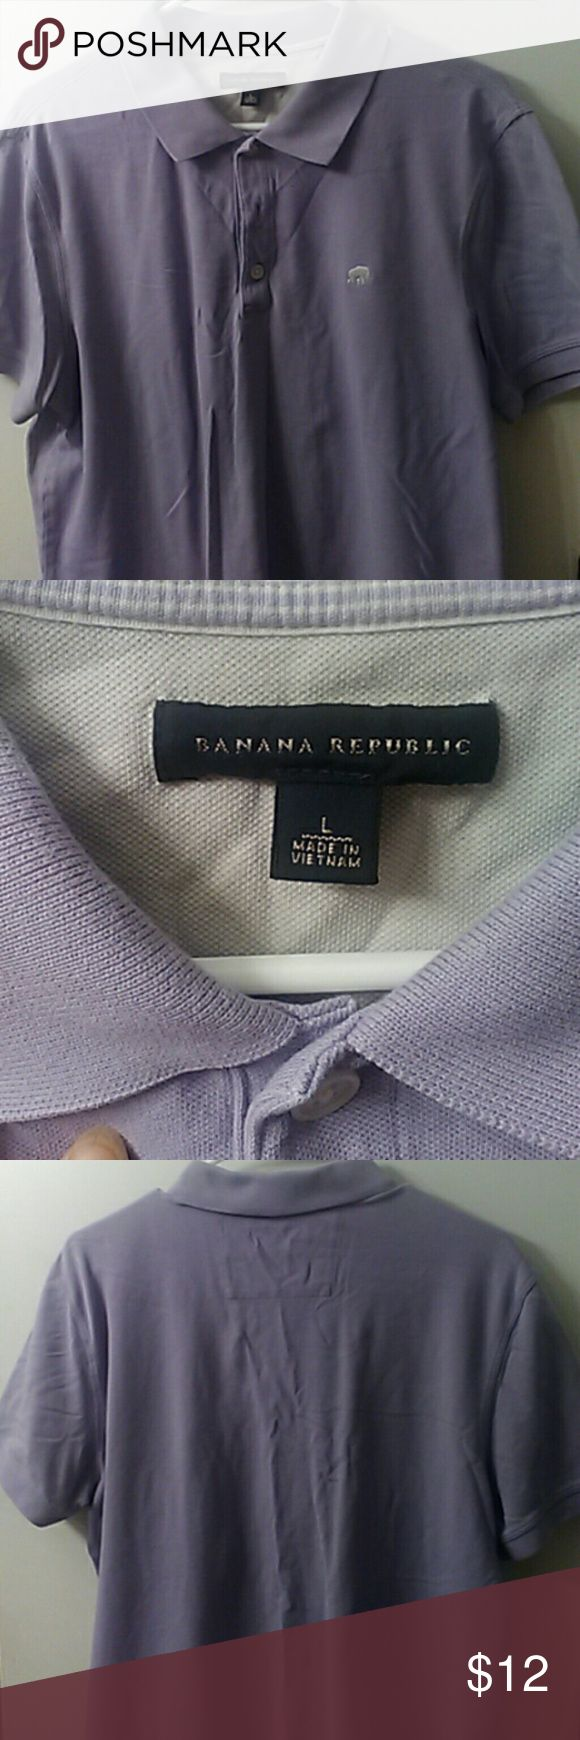 Mens Banana Republic polo Color is a soft pastel purple and has an elephant logo on the front. Condition is excellent and color still looks new. No tears or staining. Banana Republic Shirts Polos